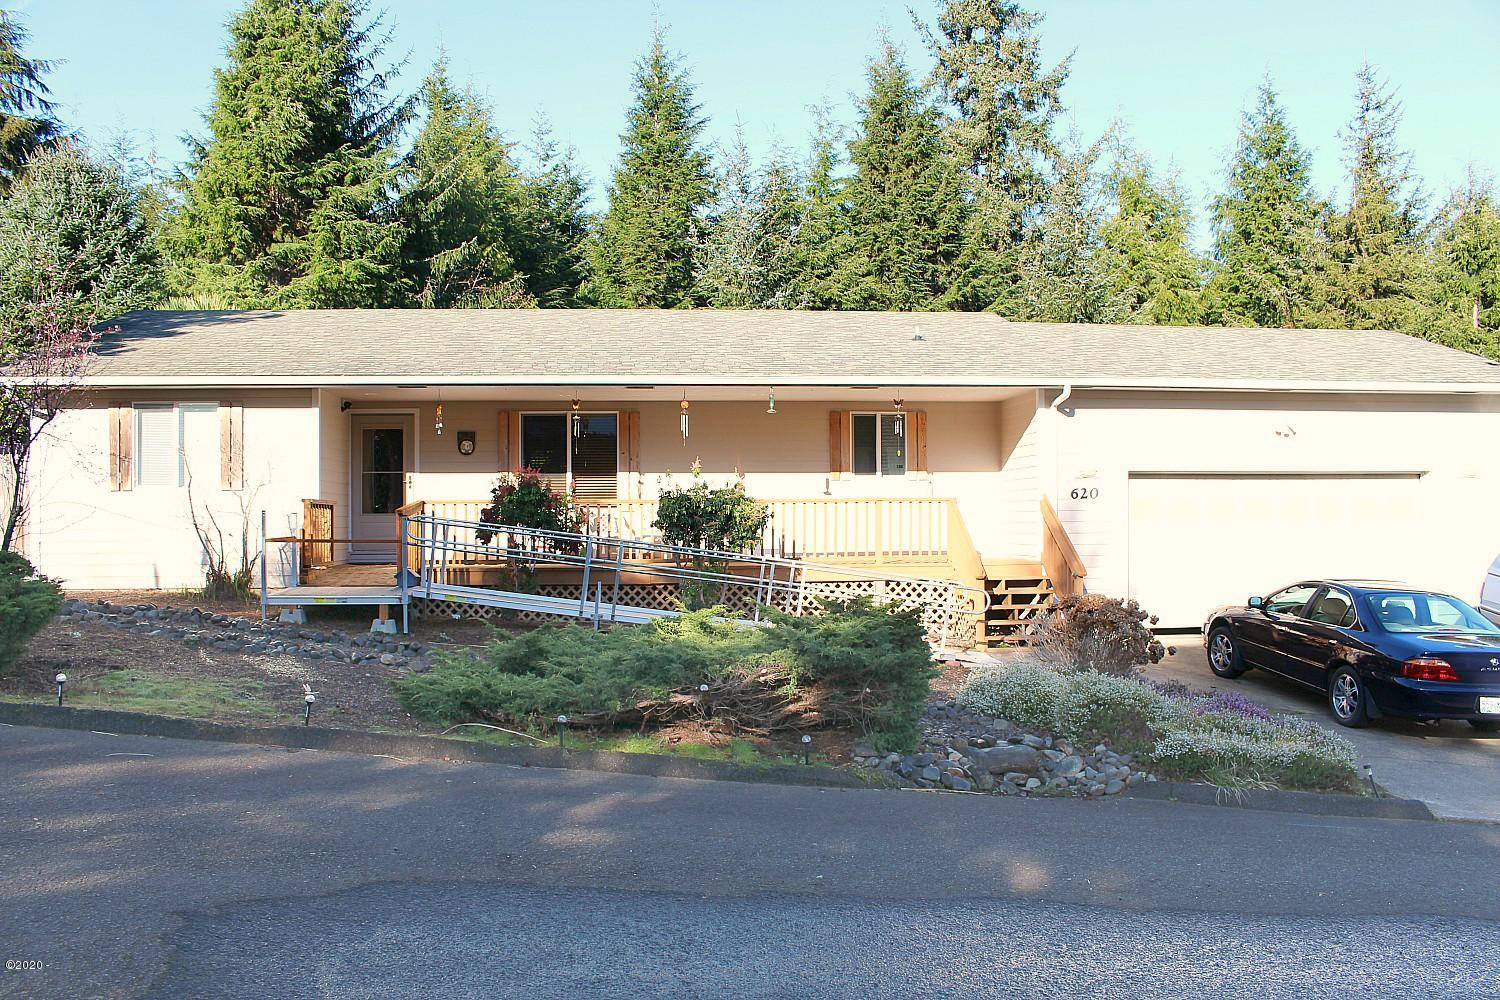 620 SE Ball Blvd, Waldport, OR 97394 - front of house 1